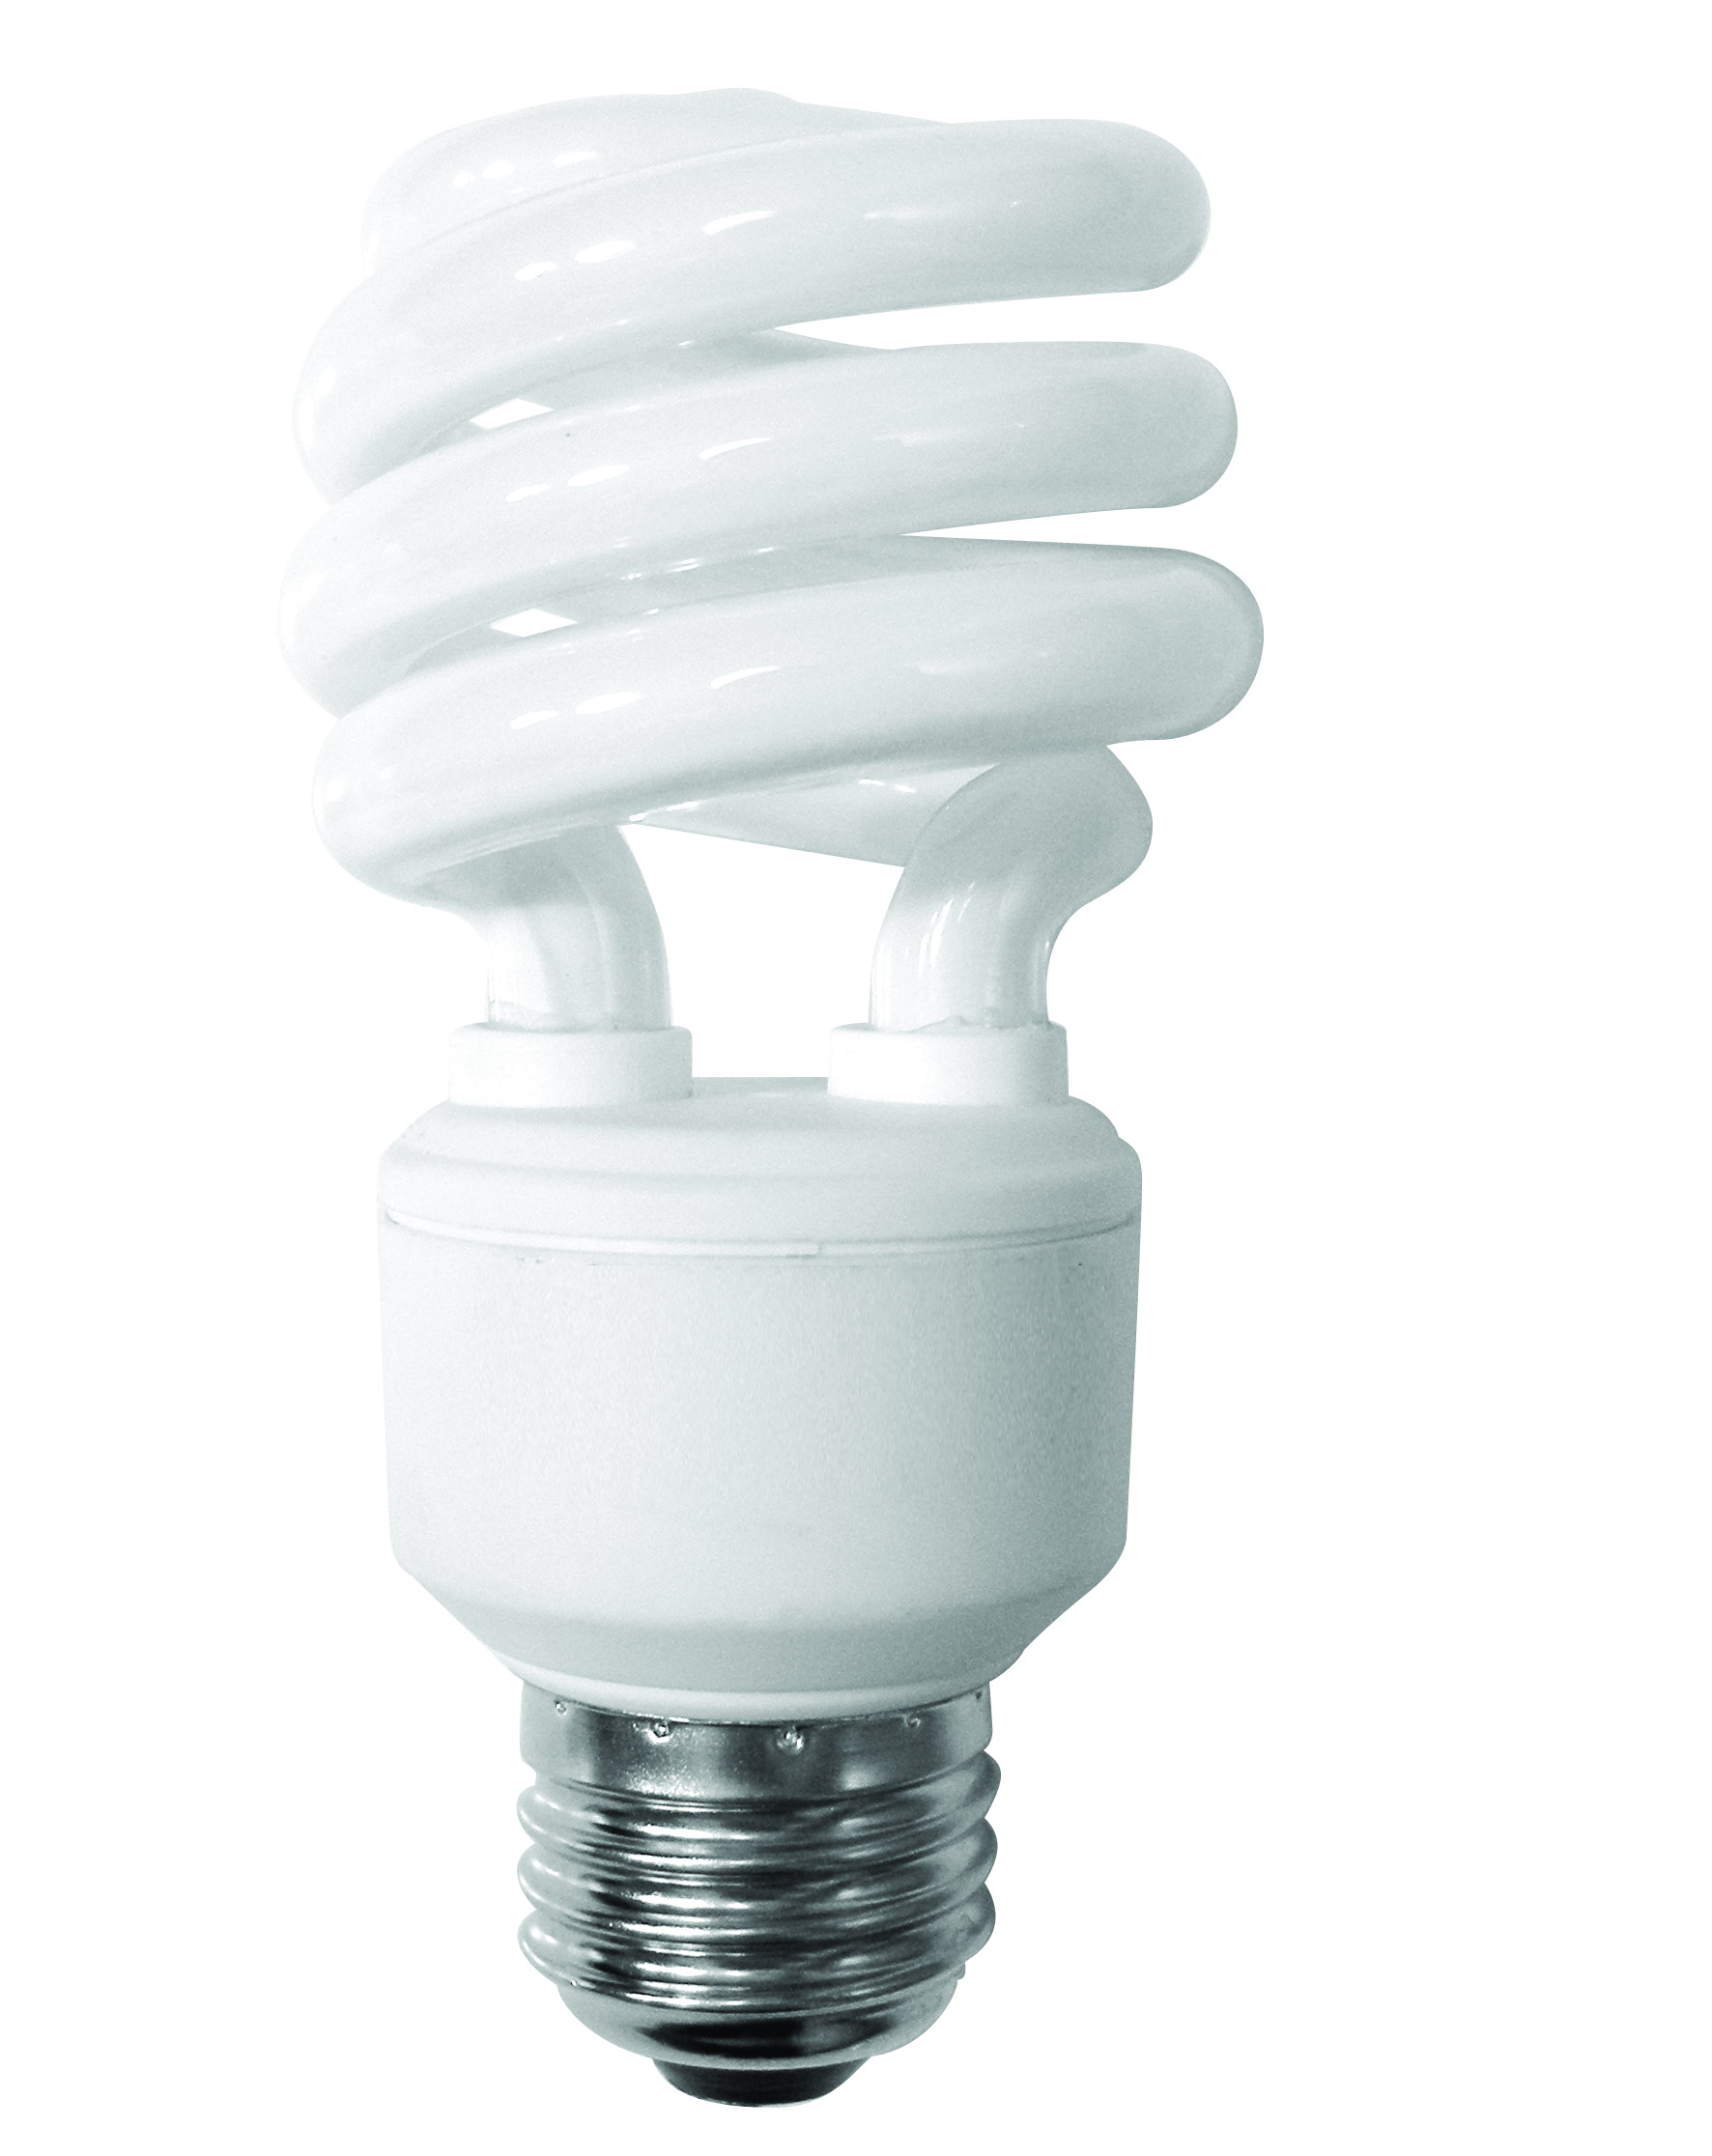 in sleeklighting image base bulbs customer light rated helpful fluorescent compact cfl reviews bulb product lighting pcr spiral best